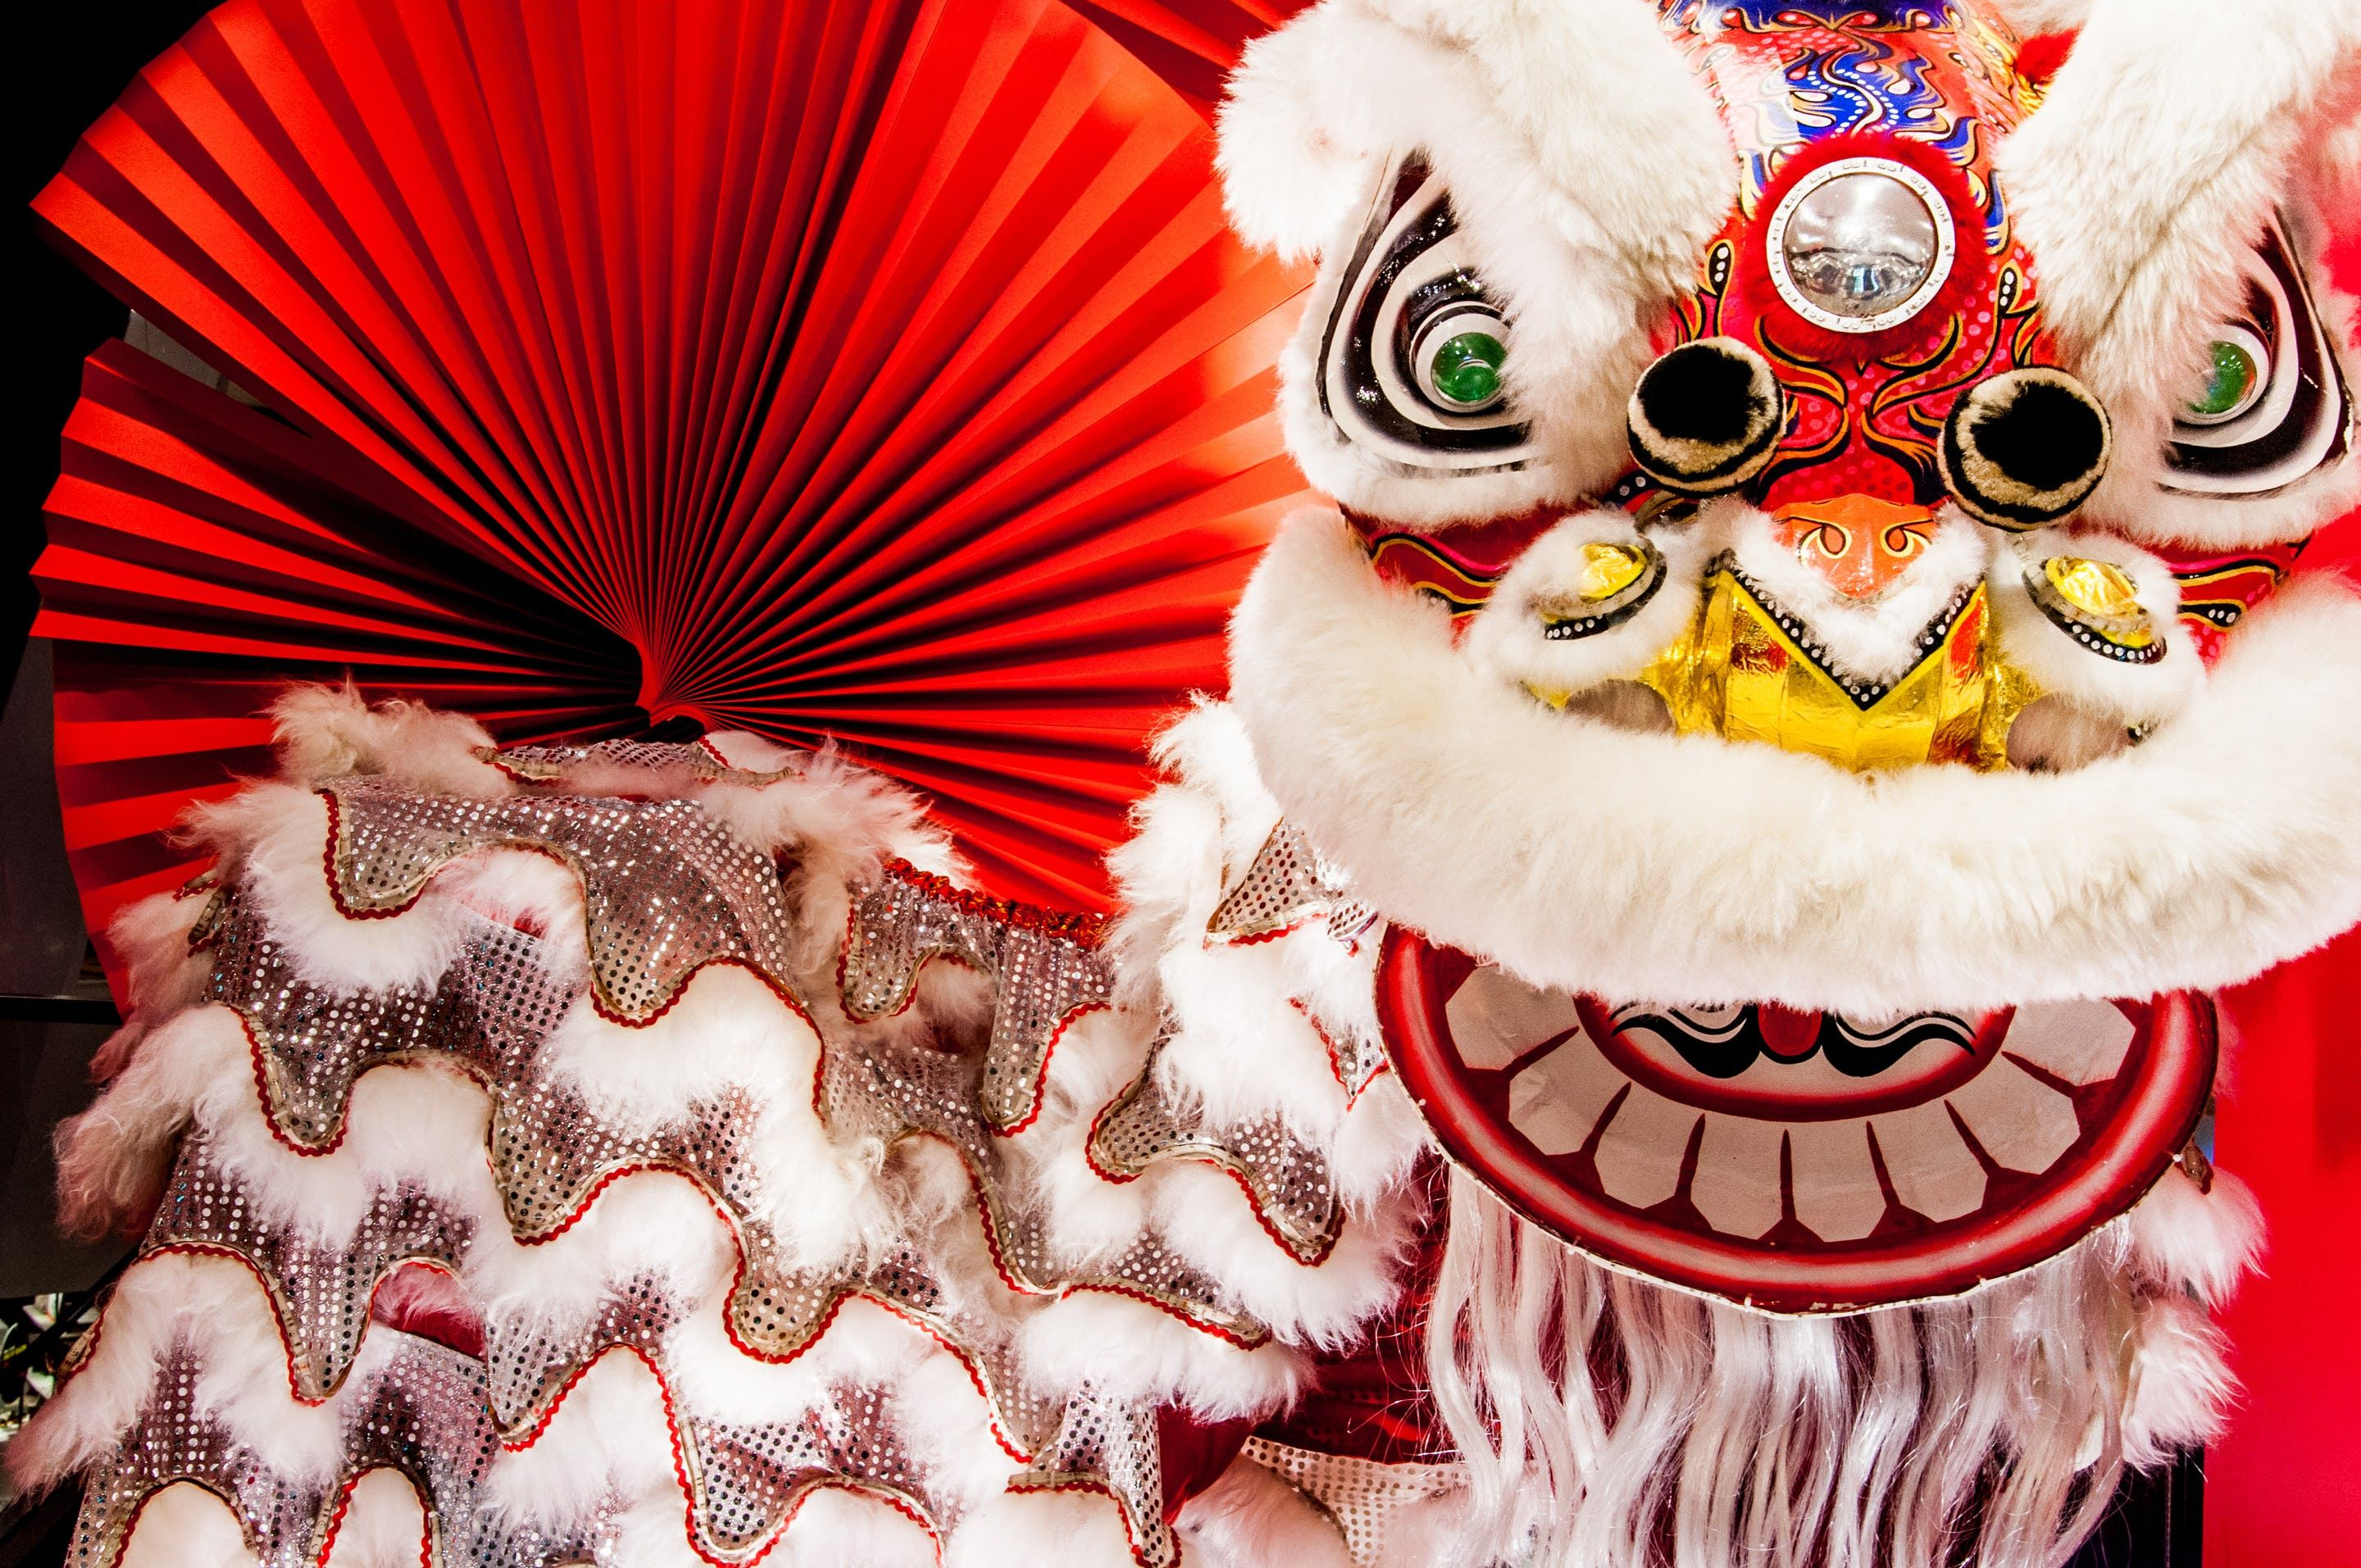 Chinese New Year Mythical Monster Nian Chinese New Year 2020 Chinese New Year Chinese Lion Dance